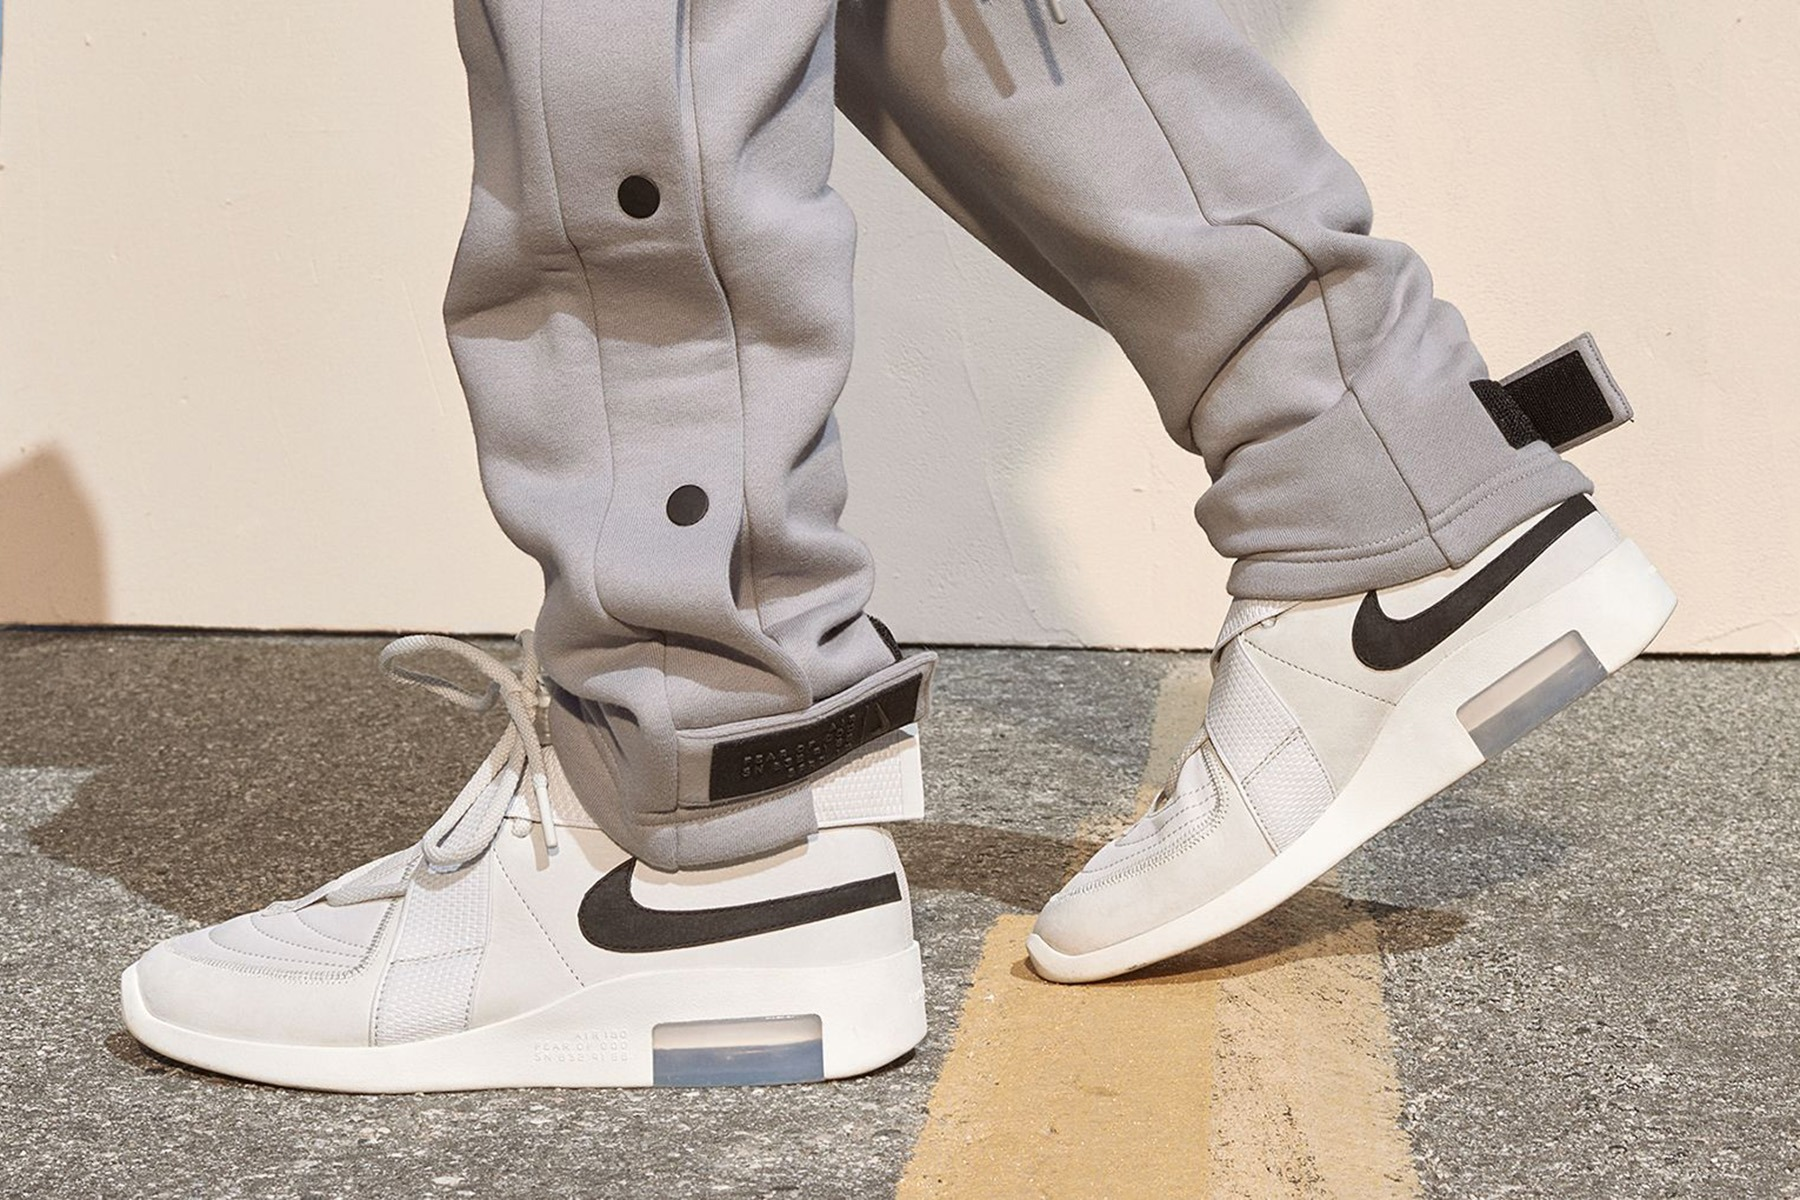 buy popular e847c d8be9 Co-created with street-fashion mogul Jerry Lorenzo and his Fear of God  brand, the Nike Air x Fear of God 1 merges the swagger of luxury streetwear  with a ...